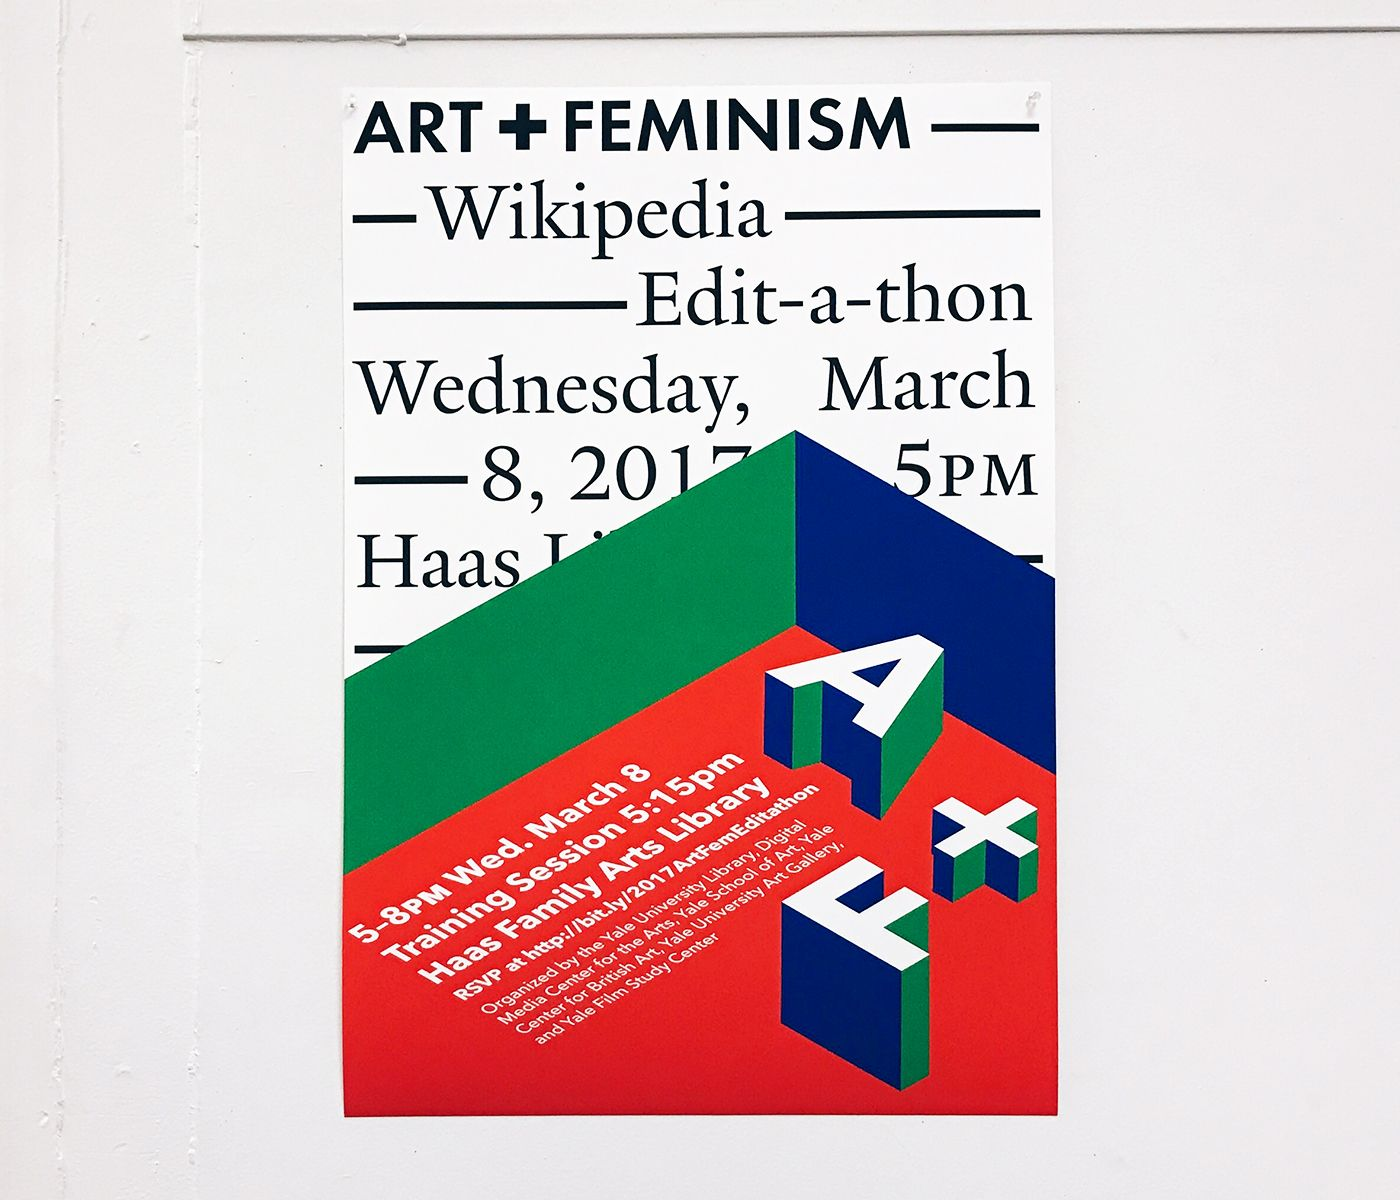 Poster for the Haas Family Arts Library Art+Feminism Wikipedia Edit-a-thon, Yale University